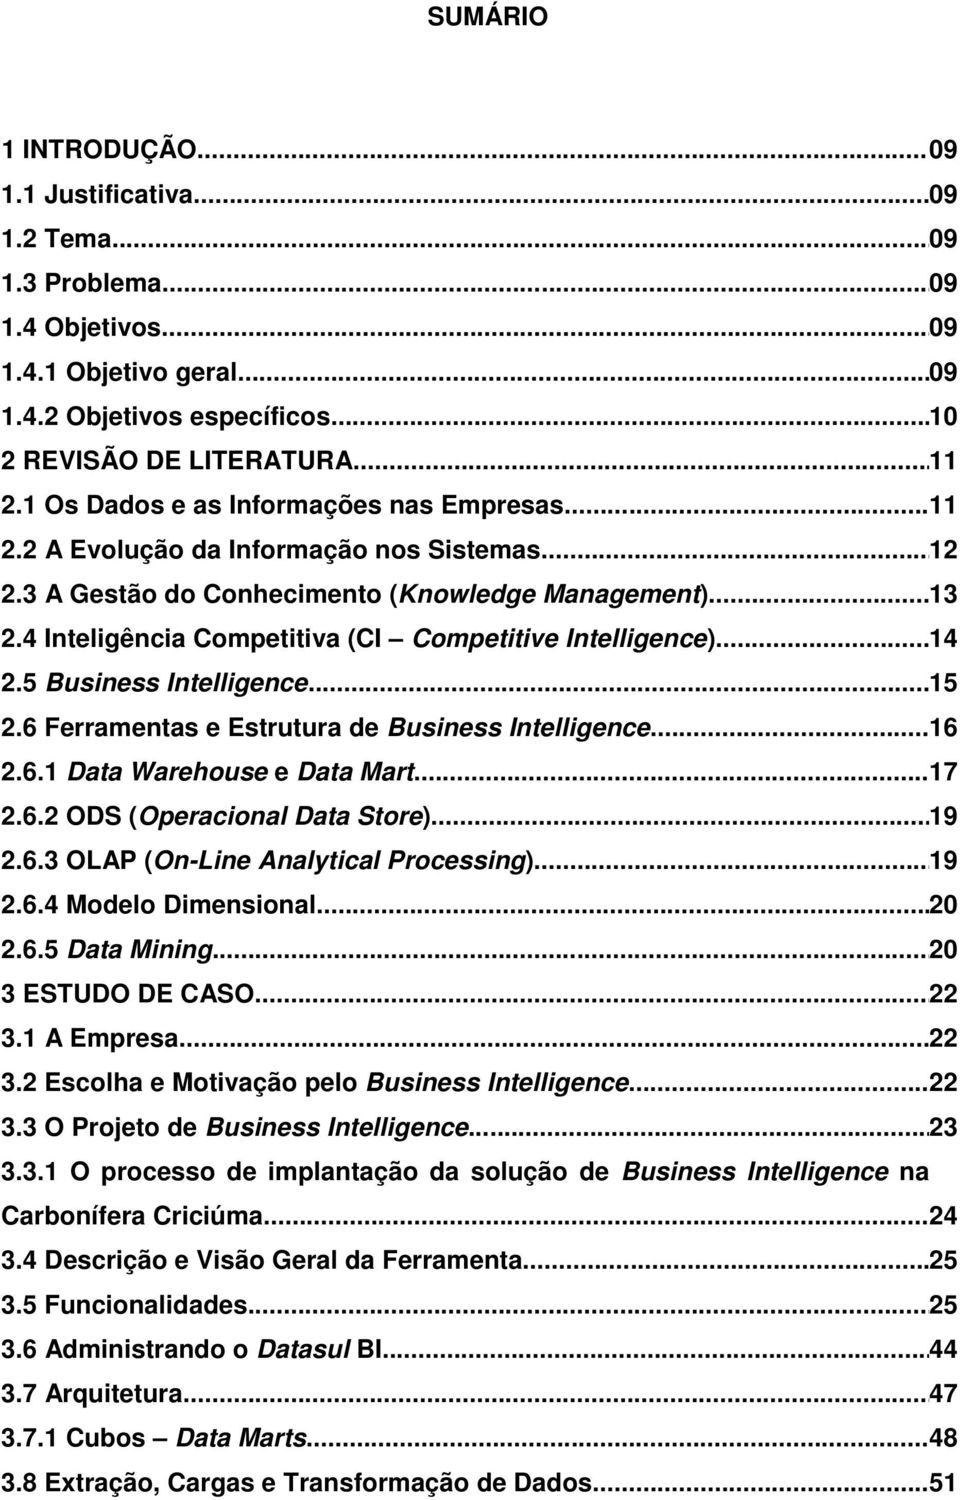 4 Inteligência Competitiva (CI Competitive Intelligence)... 14 2.5 Business Intelligence... 15 2.6 Ferramentas e Estrutura de Business Intelligence... 16 2.6.1 Data Warehouse e Data Mart... 17 2.6.2 ODS (Operacional Data Store).